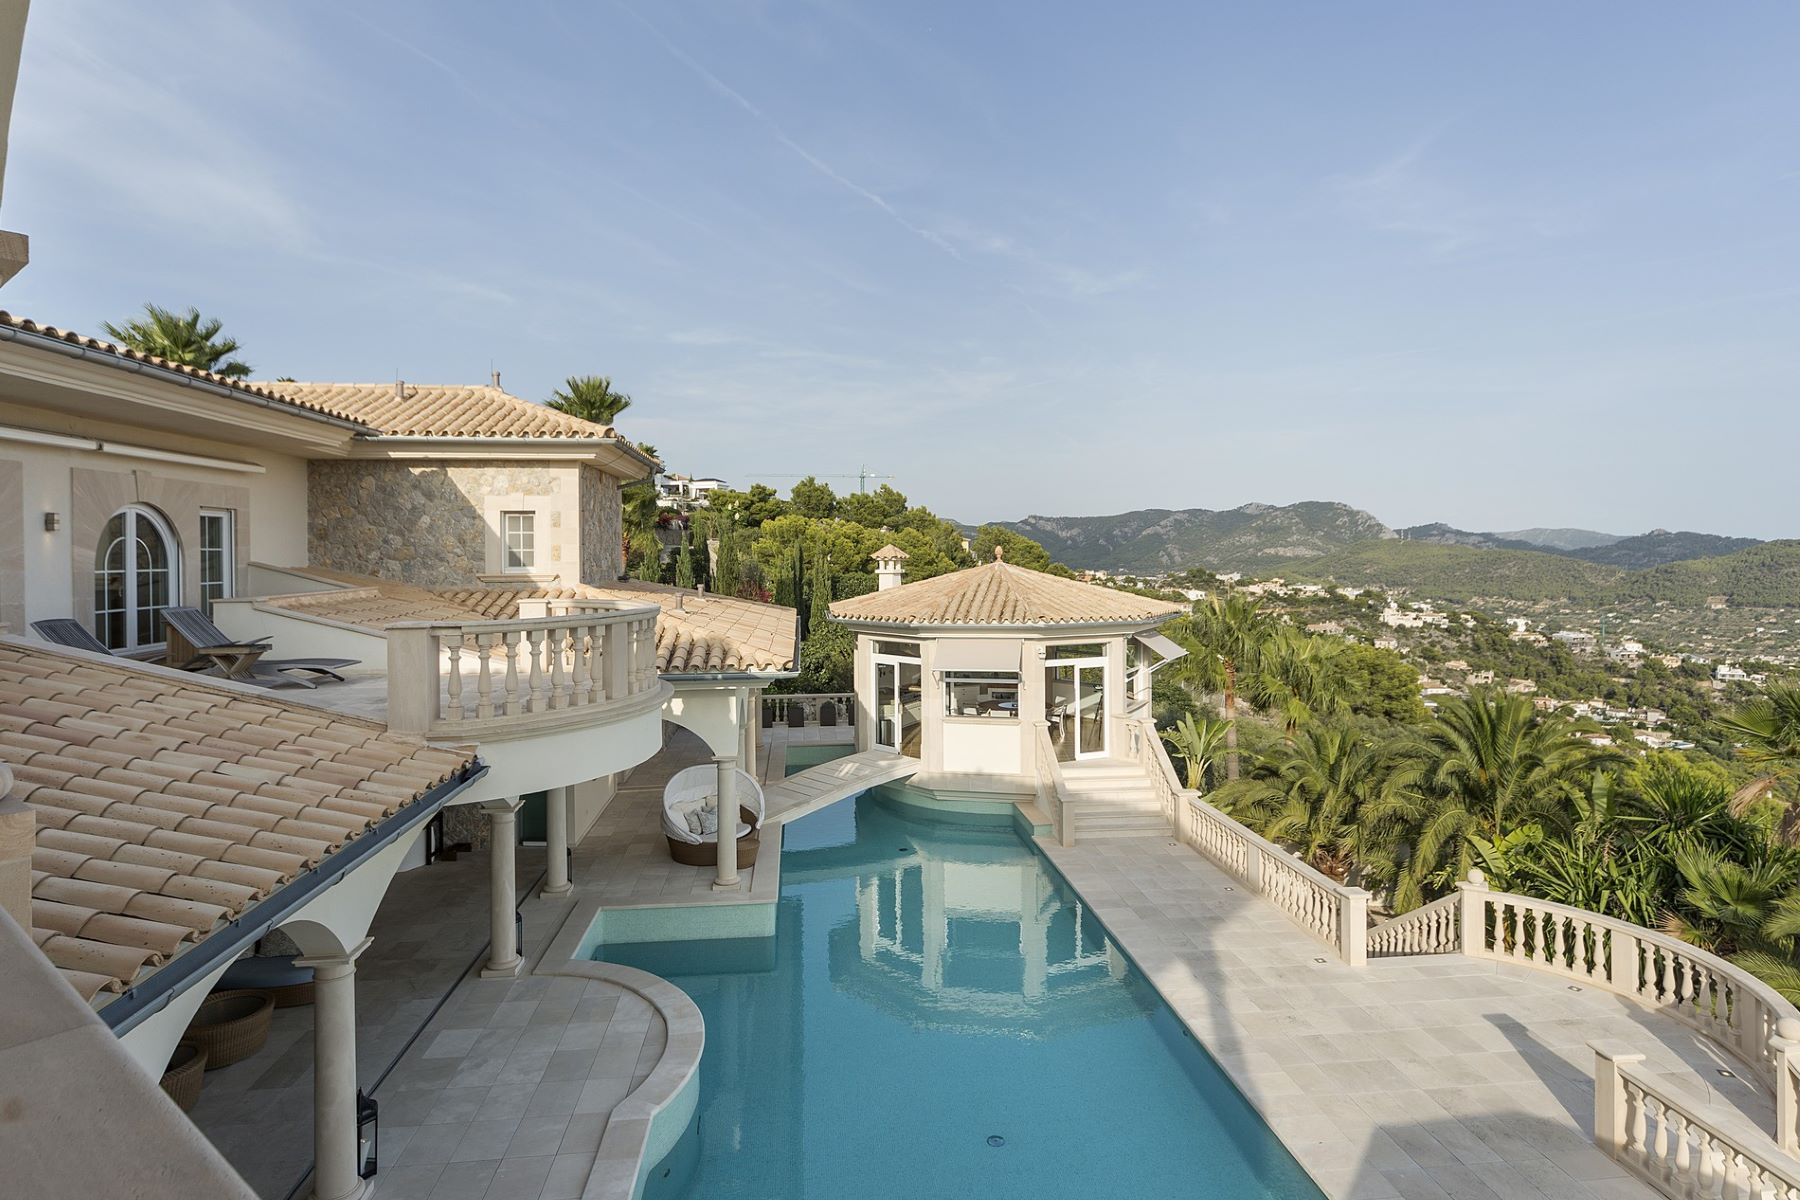 Single Family Home for Sale at Impressive mansion in a unique setting Other Balearic Islands, Balearic Islands Spain